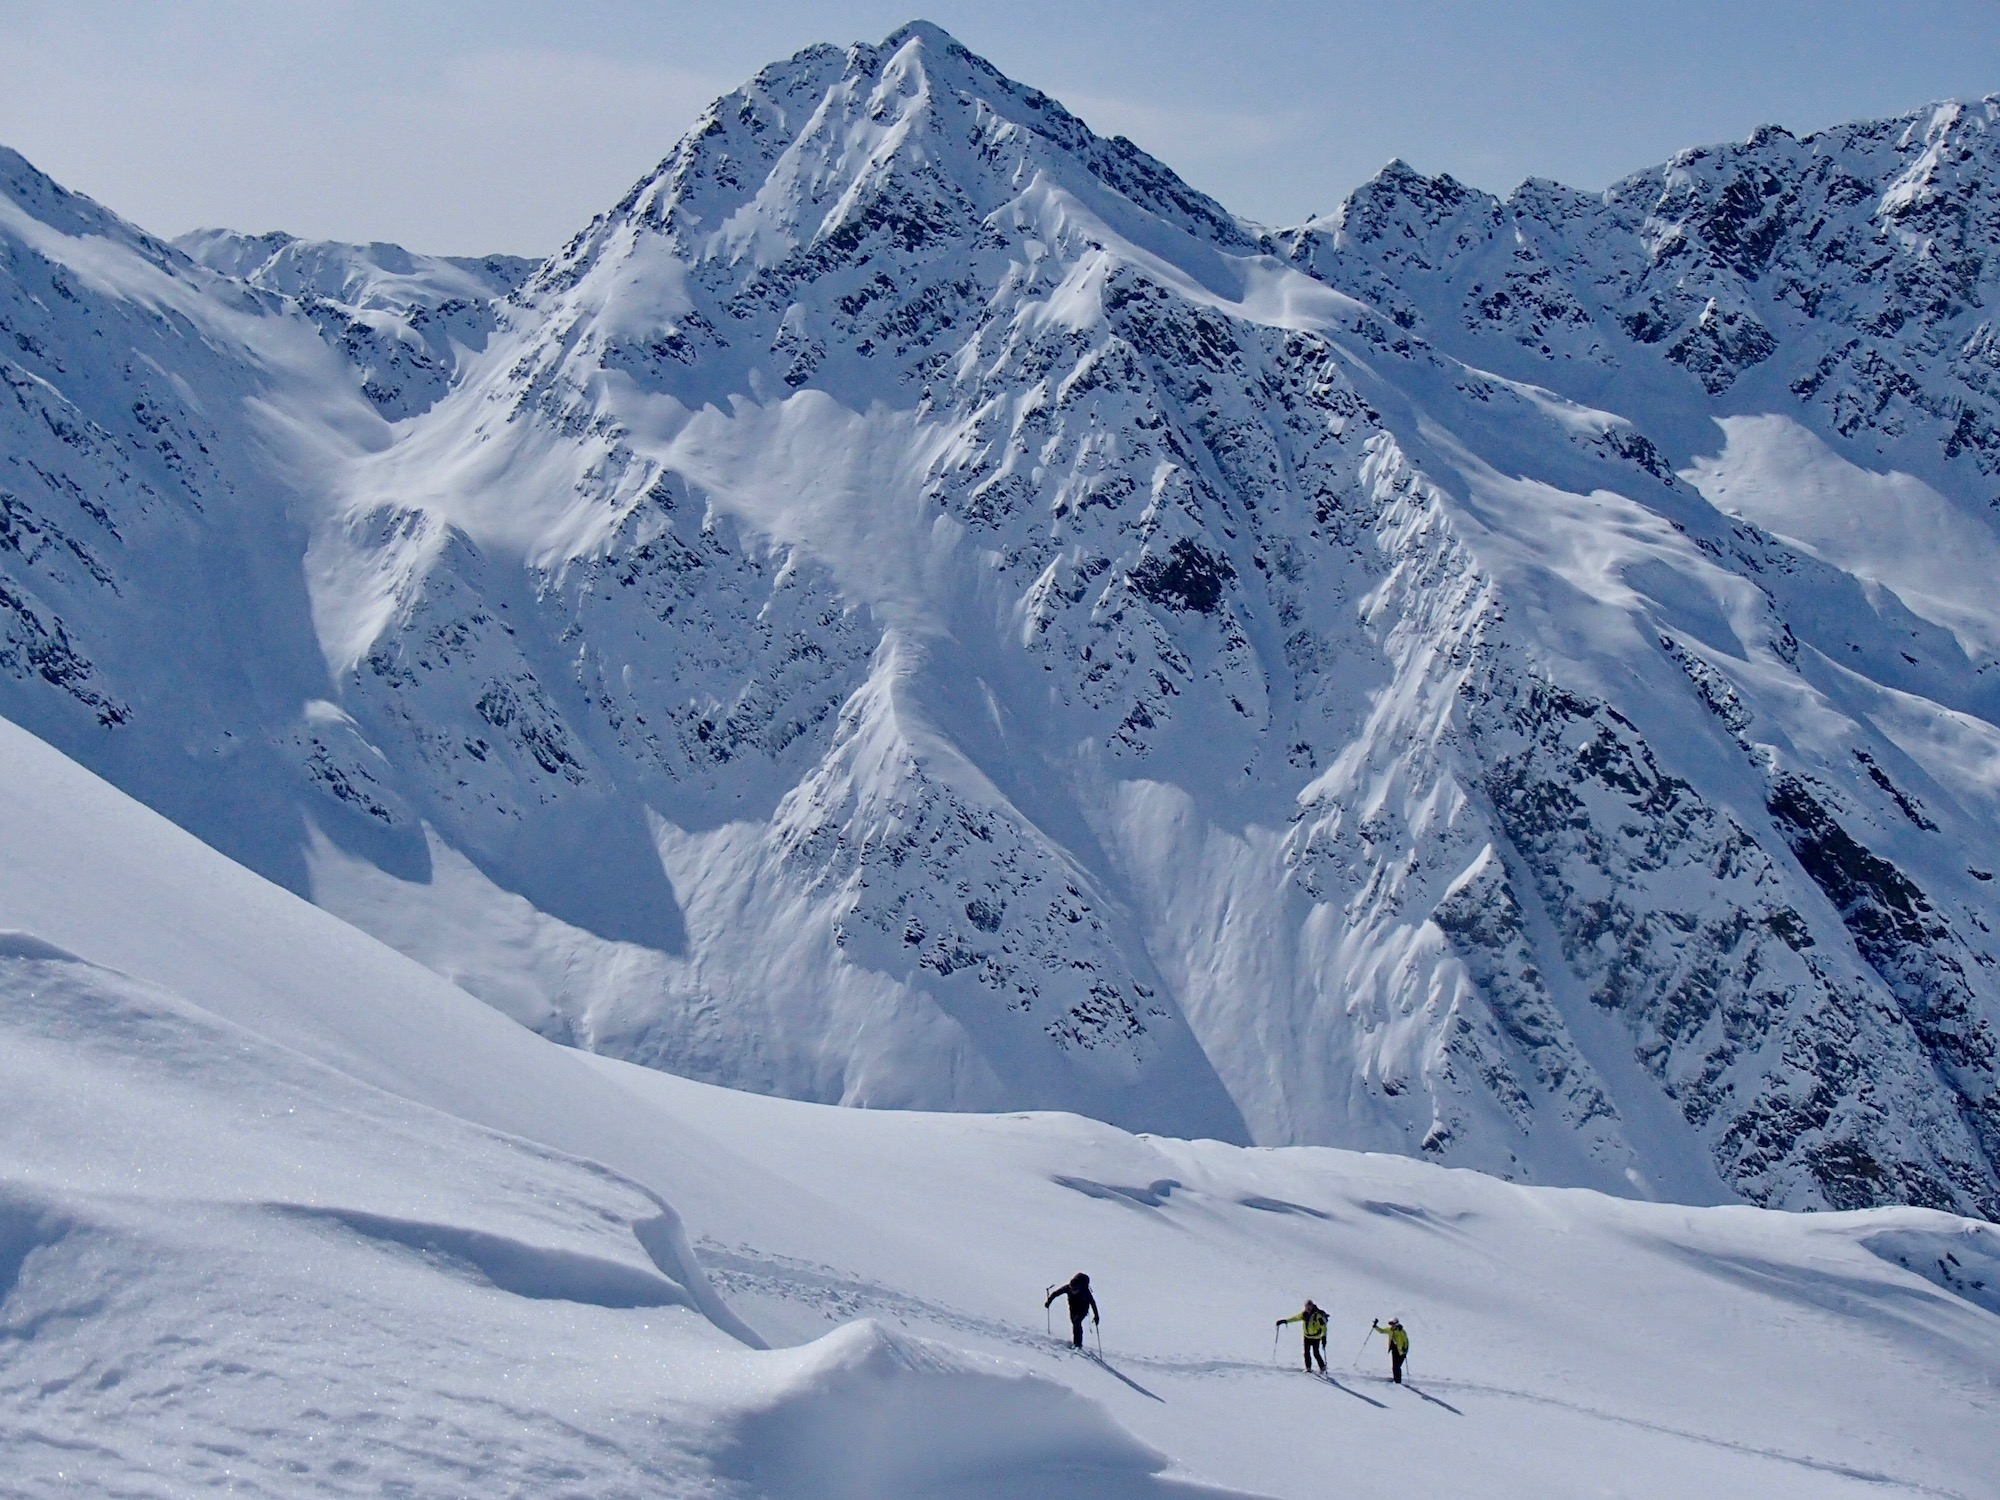 Ski touring at Grossglockner